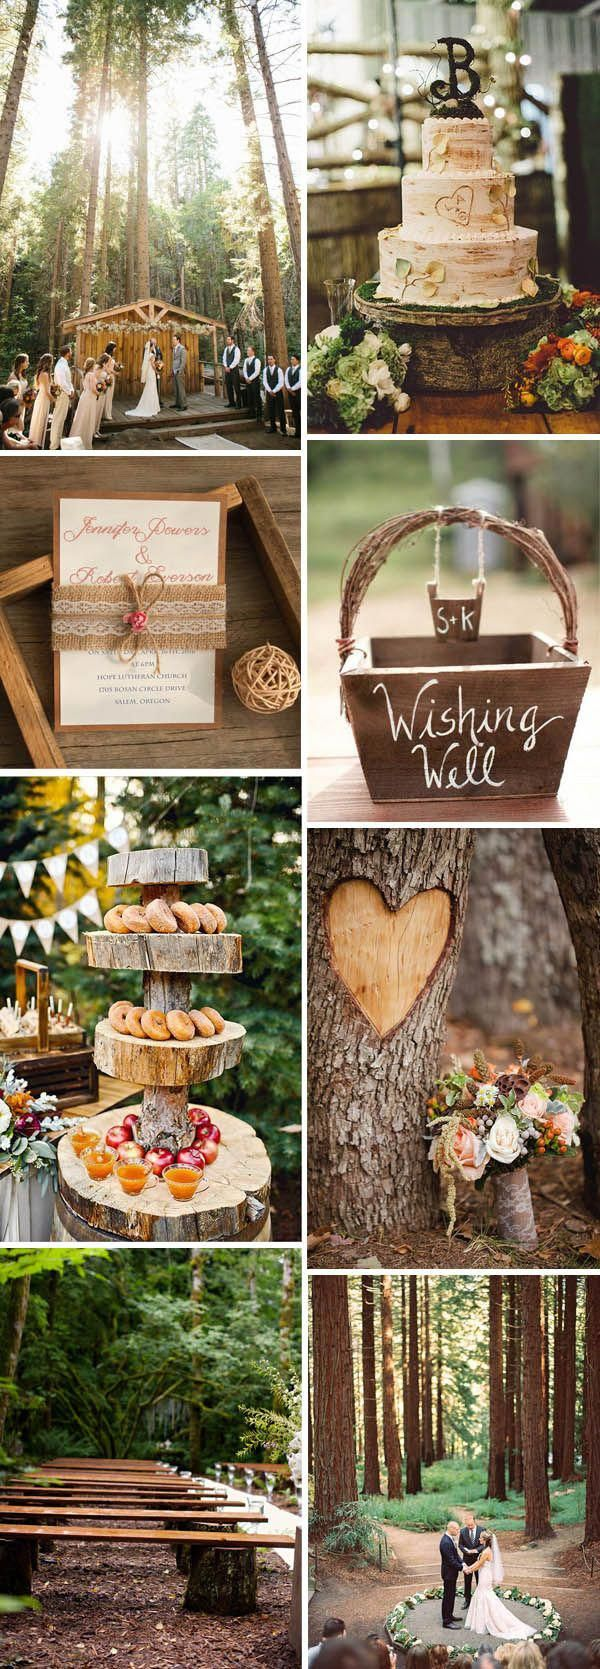 Wedding decorations rustic october 2018 rustic wedding ideas in the woods rusticweddingdresses  Elegant